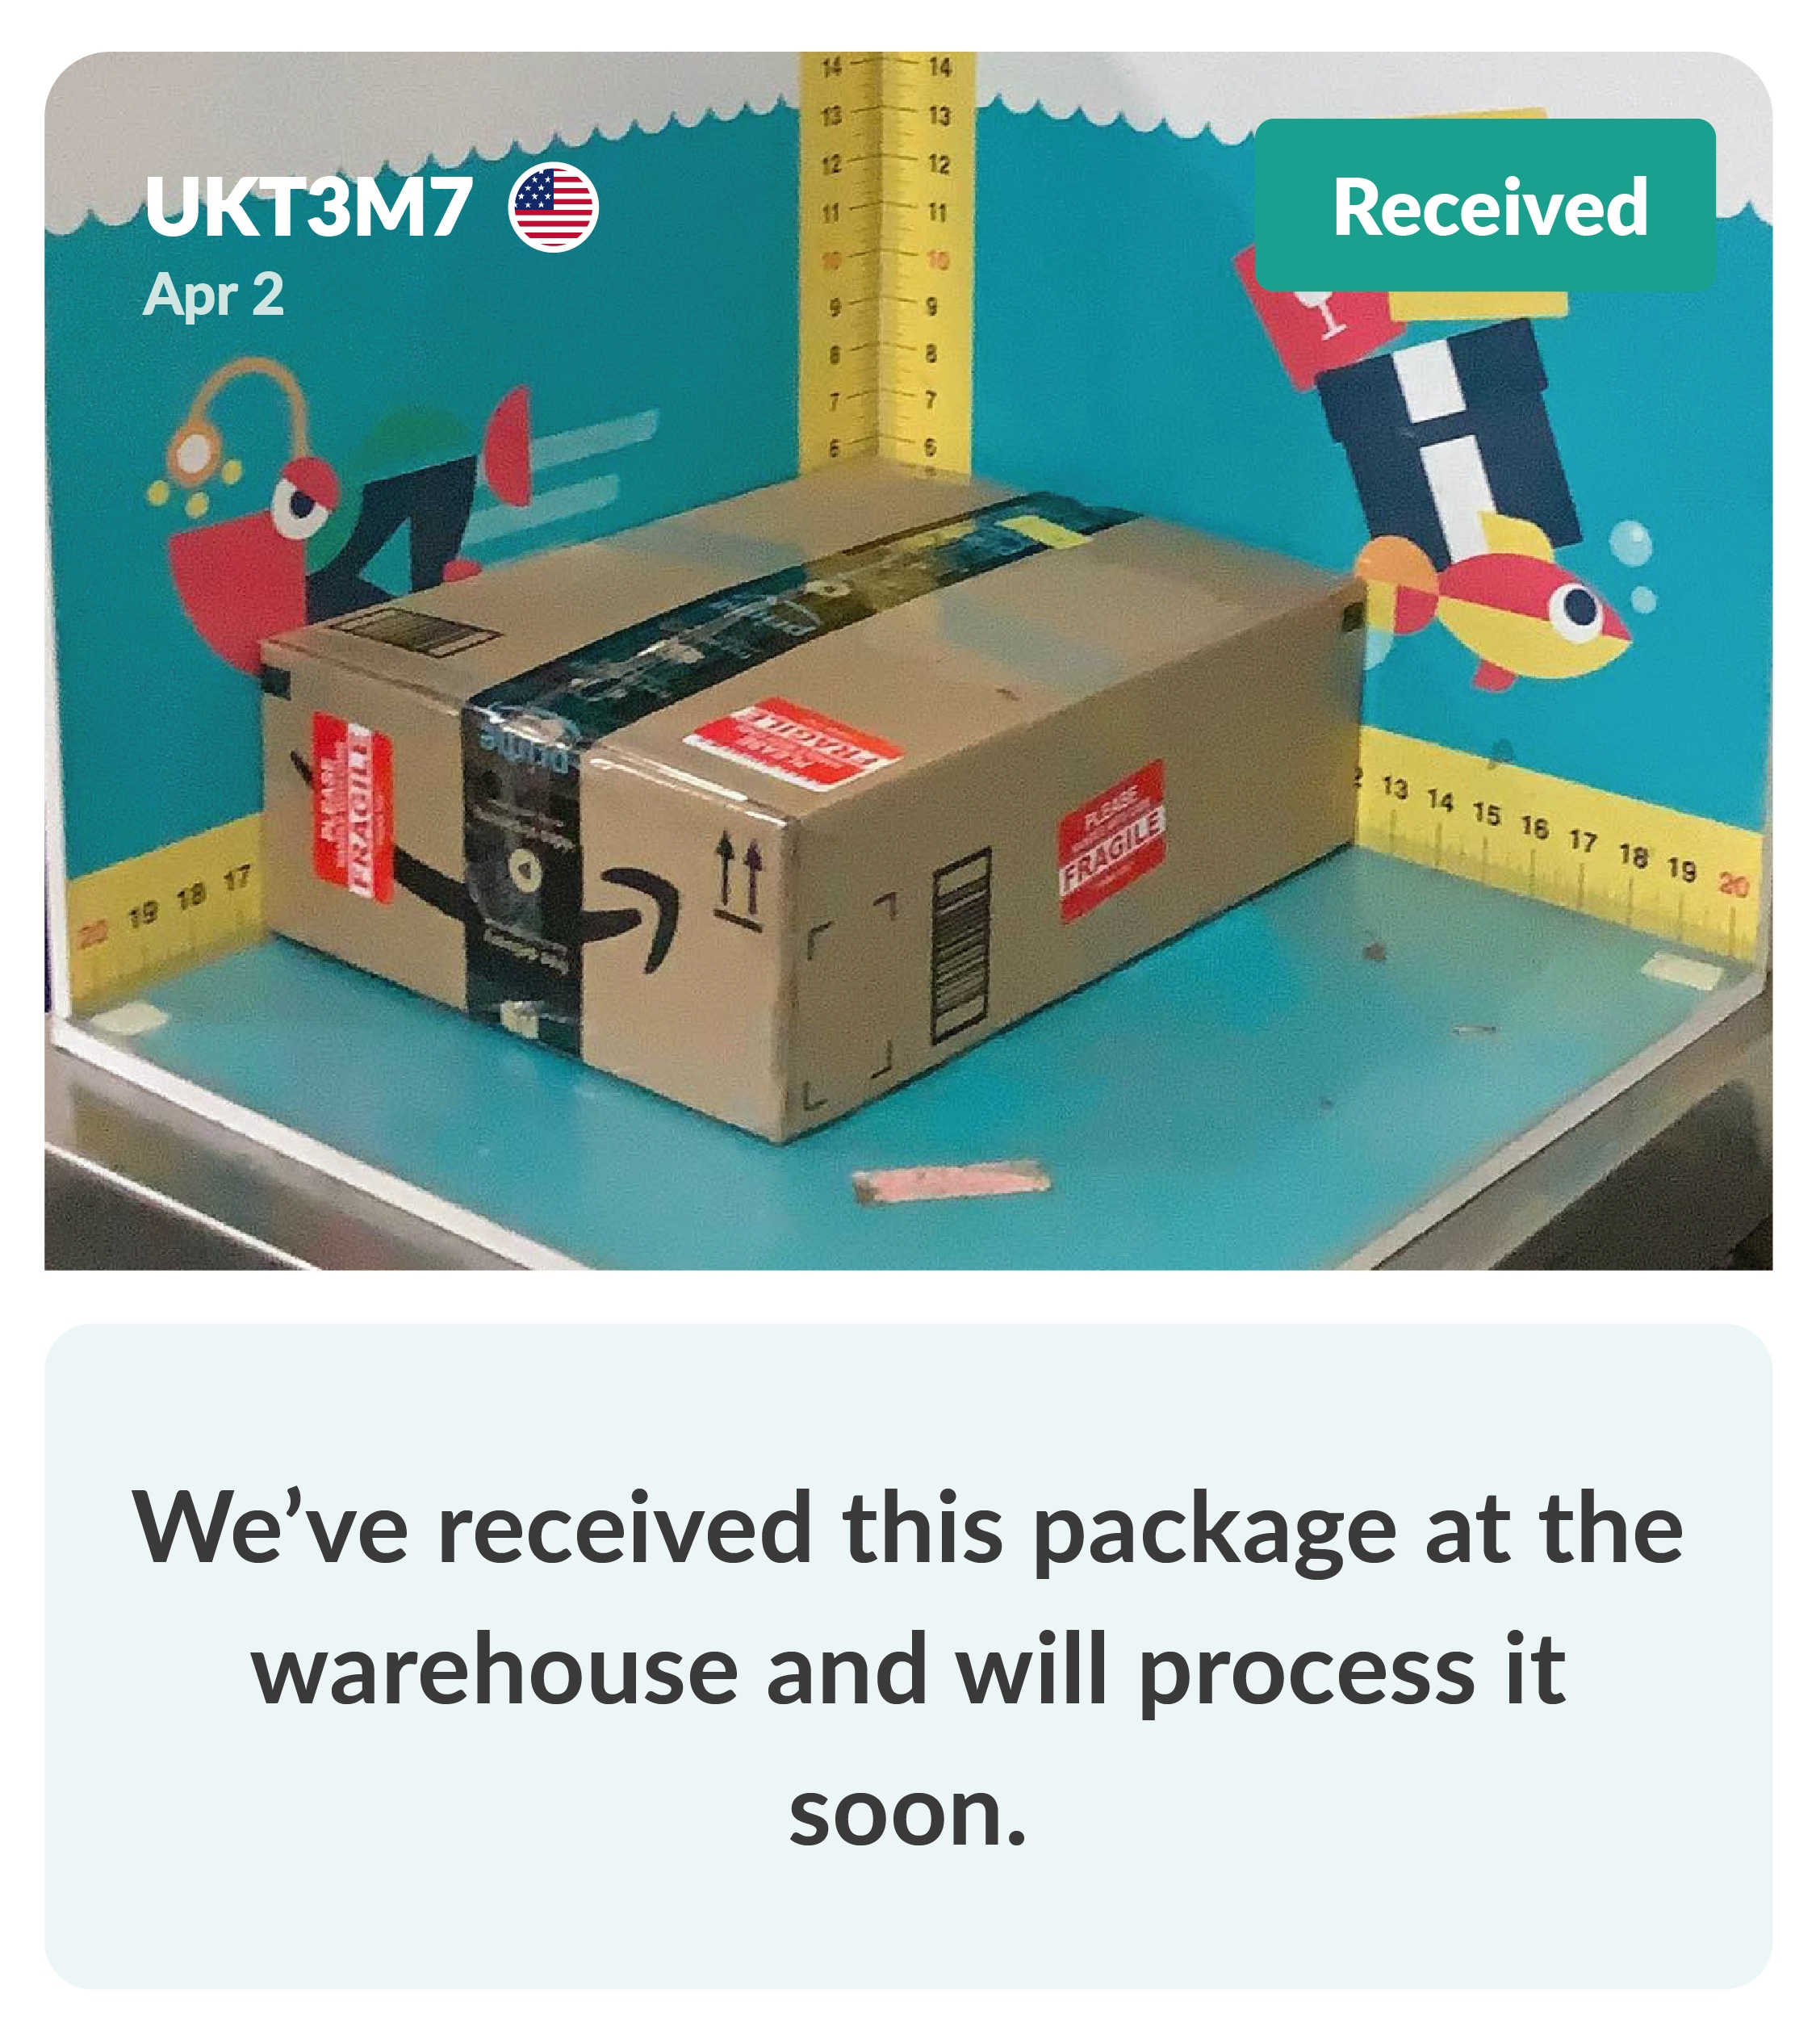 Package arrival in warehouse